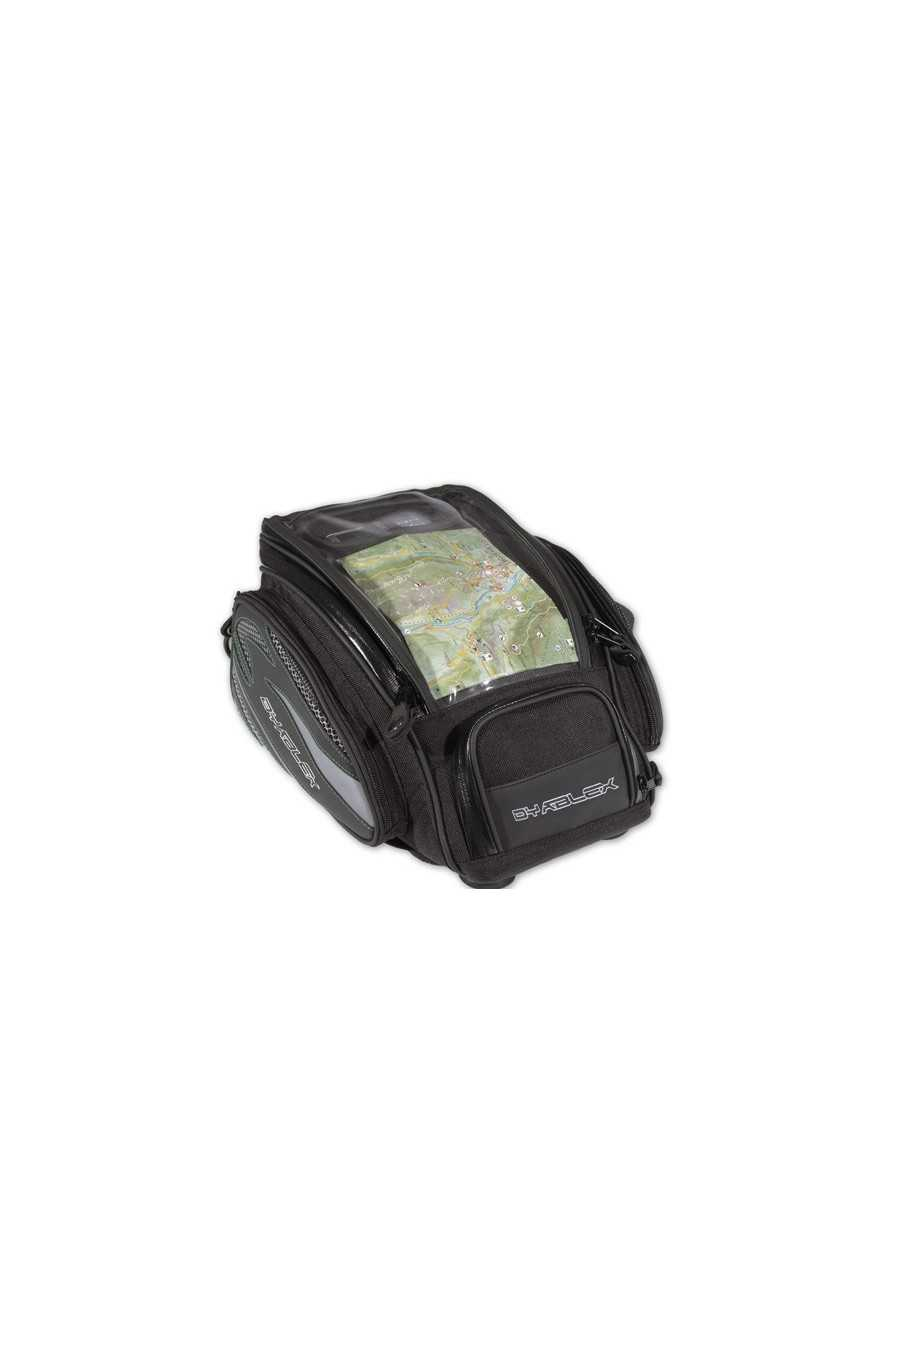 Dyablex Bag Spider Black